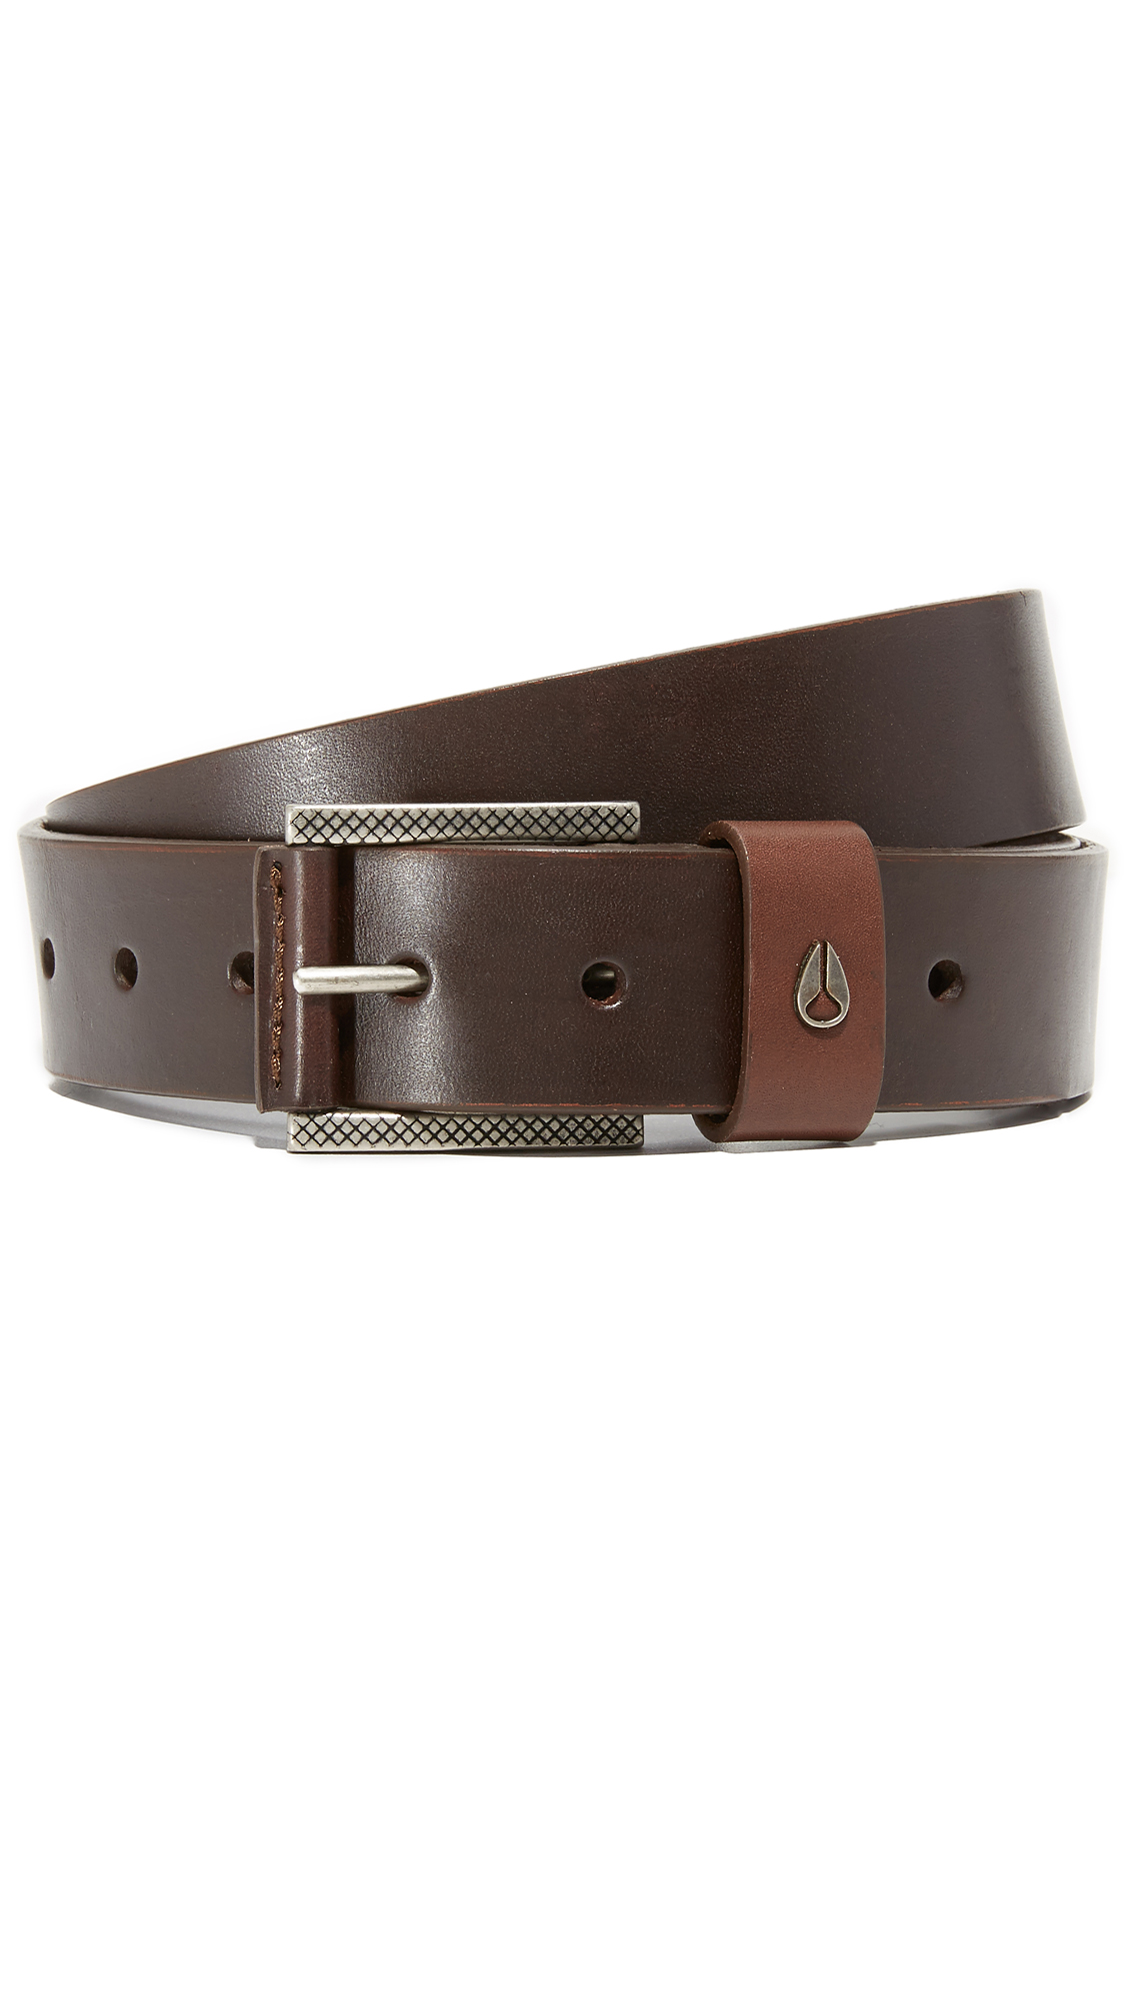 Nixon Belts AMERICANA SLIM LEATHER BELT